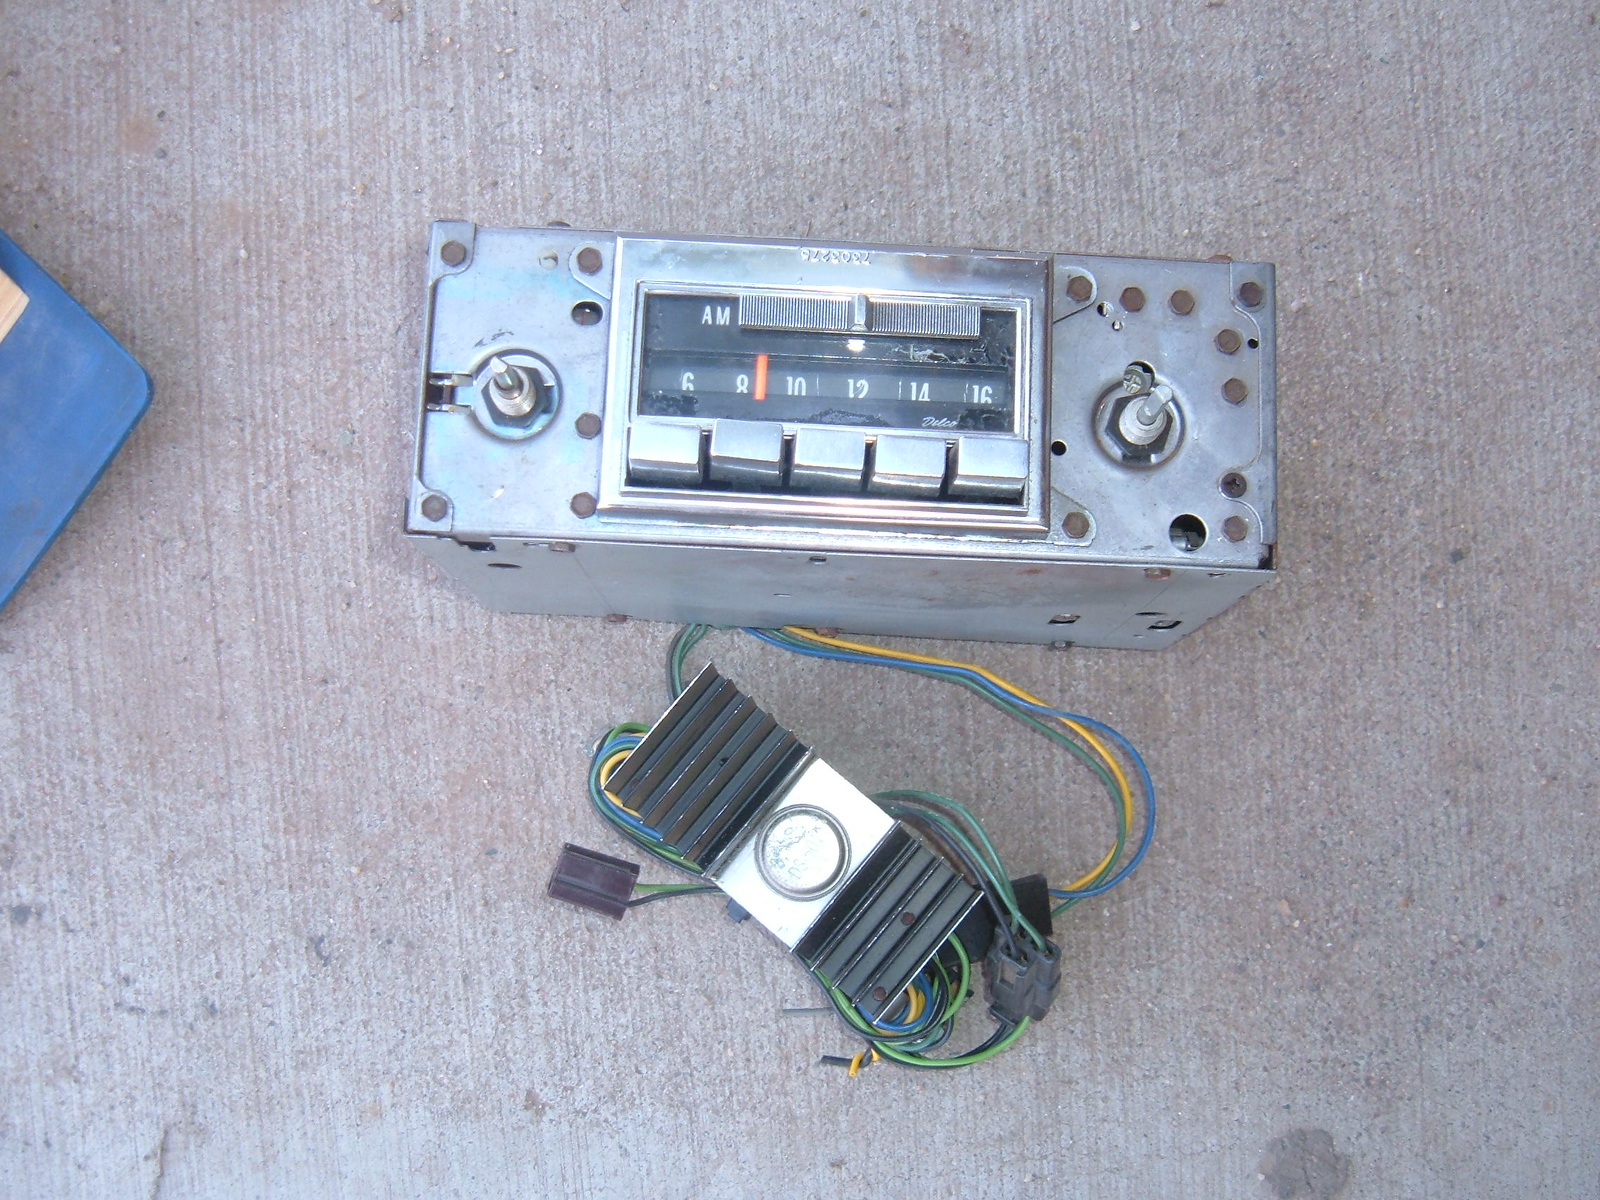 1971 72 73 corvette am/fm radio original used (z 71-3 corvette radio)